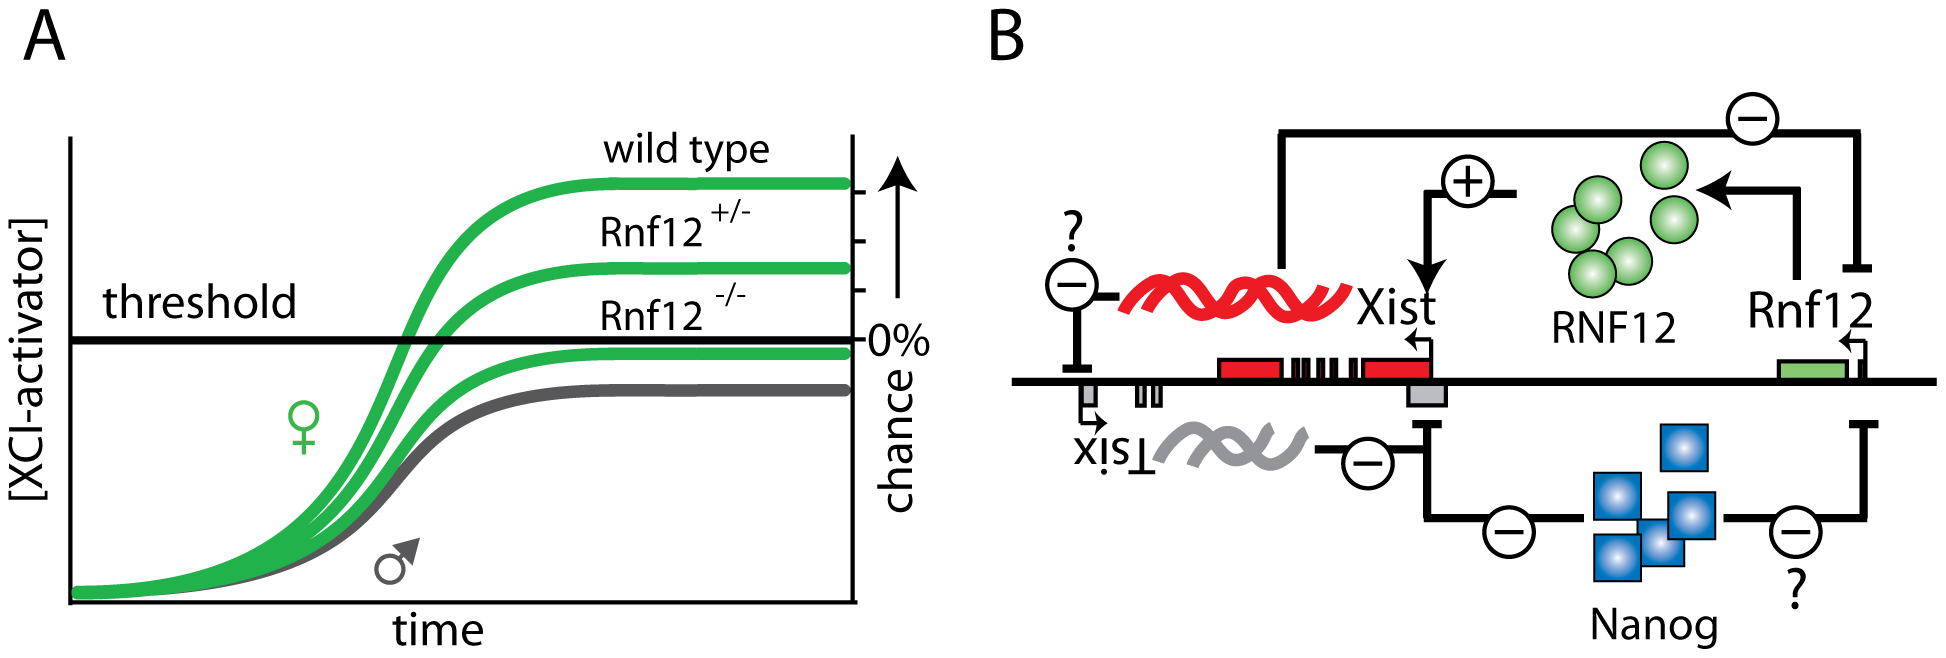 Rnf12 and its role in the XCI regulatory network.